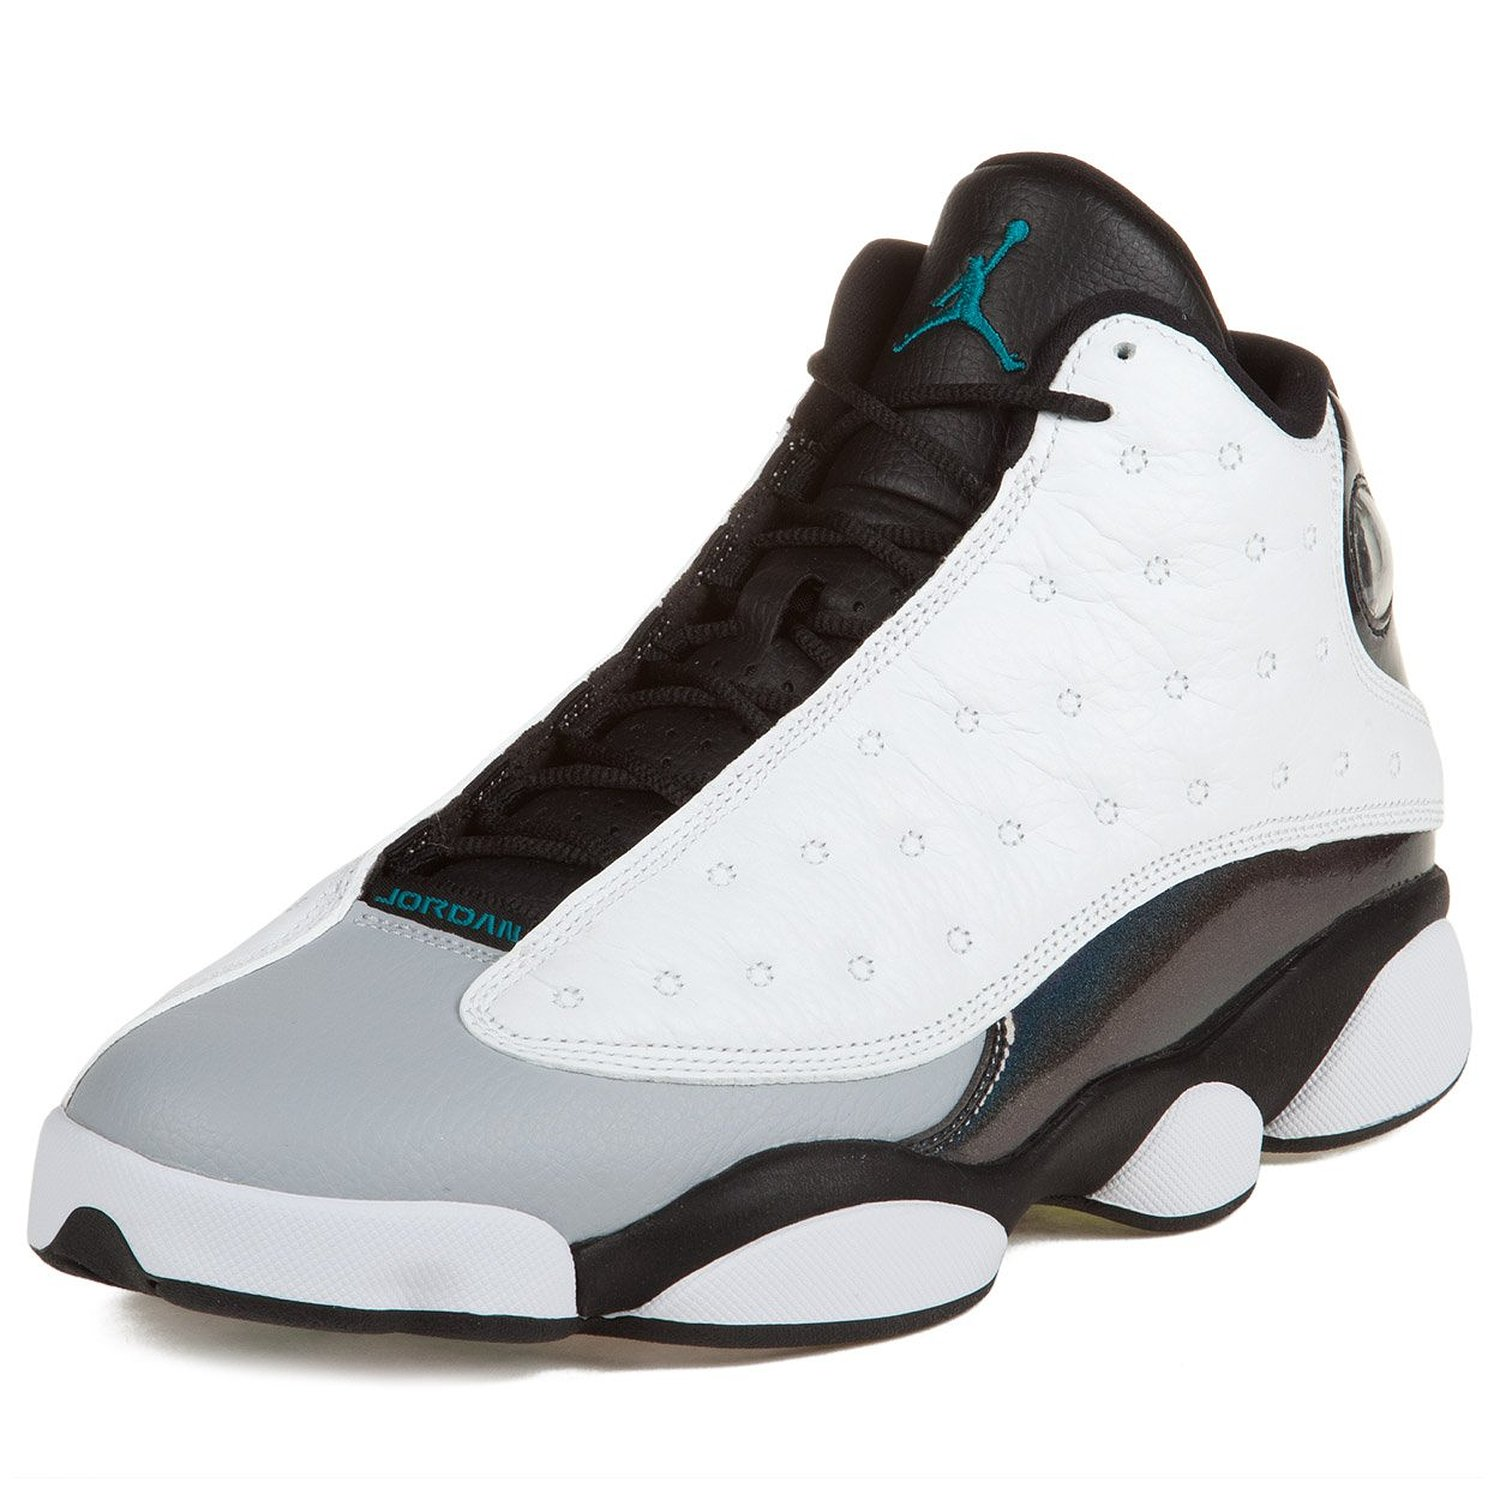 Nike Mens Air Jordan 13 Retro White/Tropical Teal-Black-Wolf Grey Leather Basketball Shoes Size 8